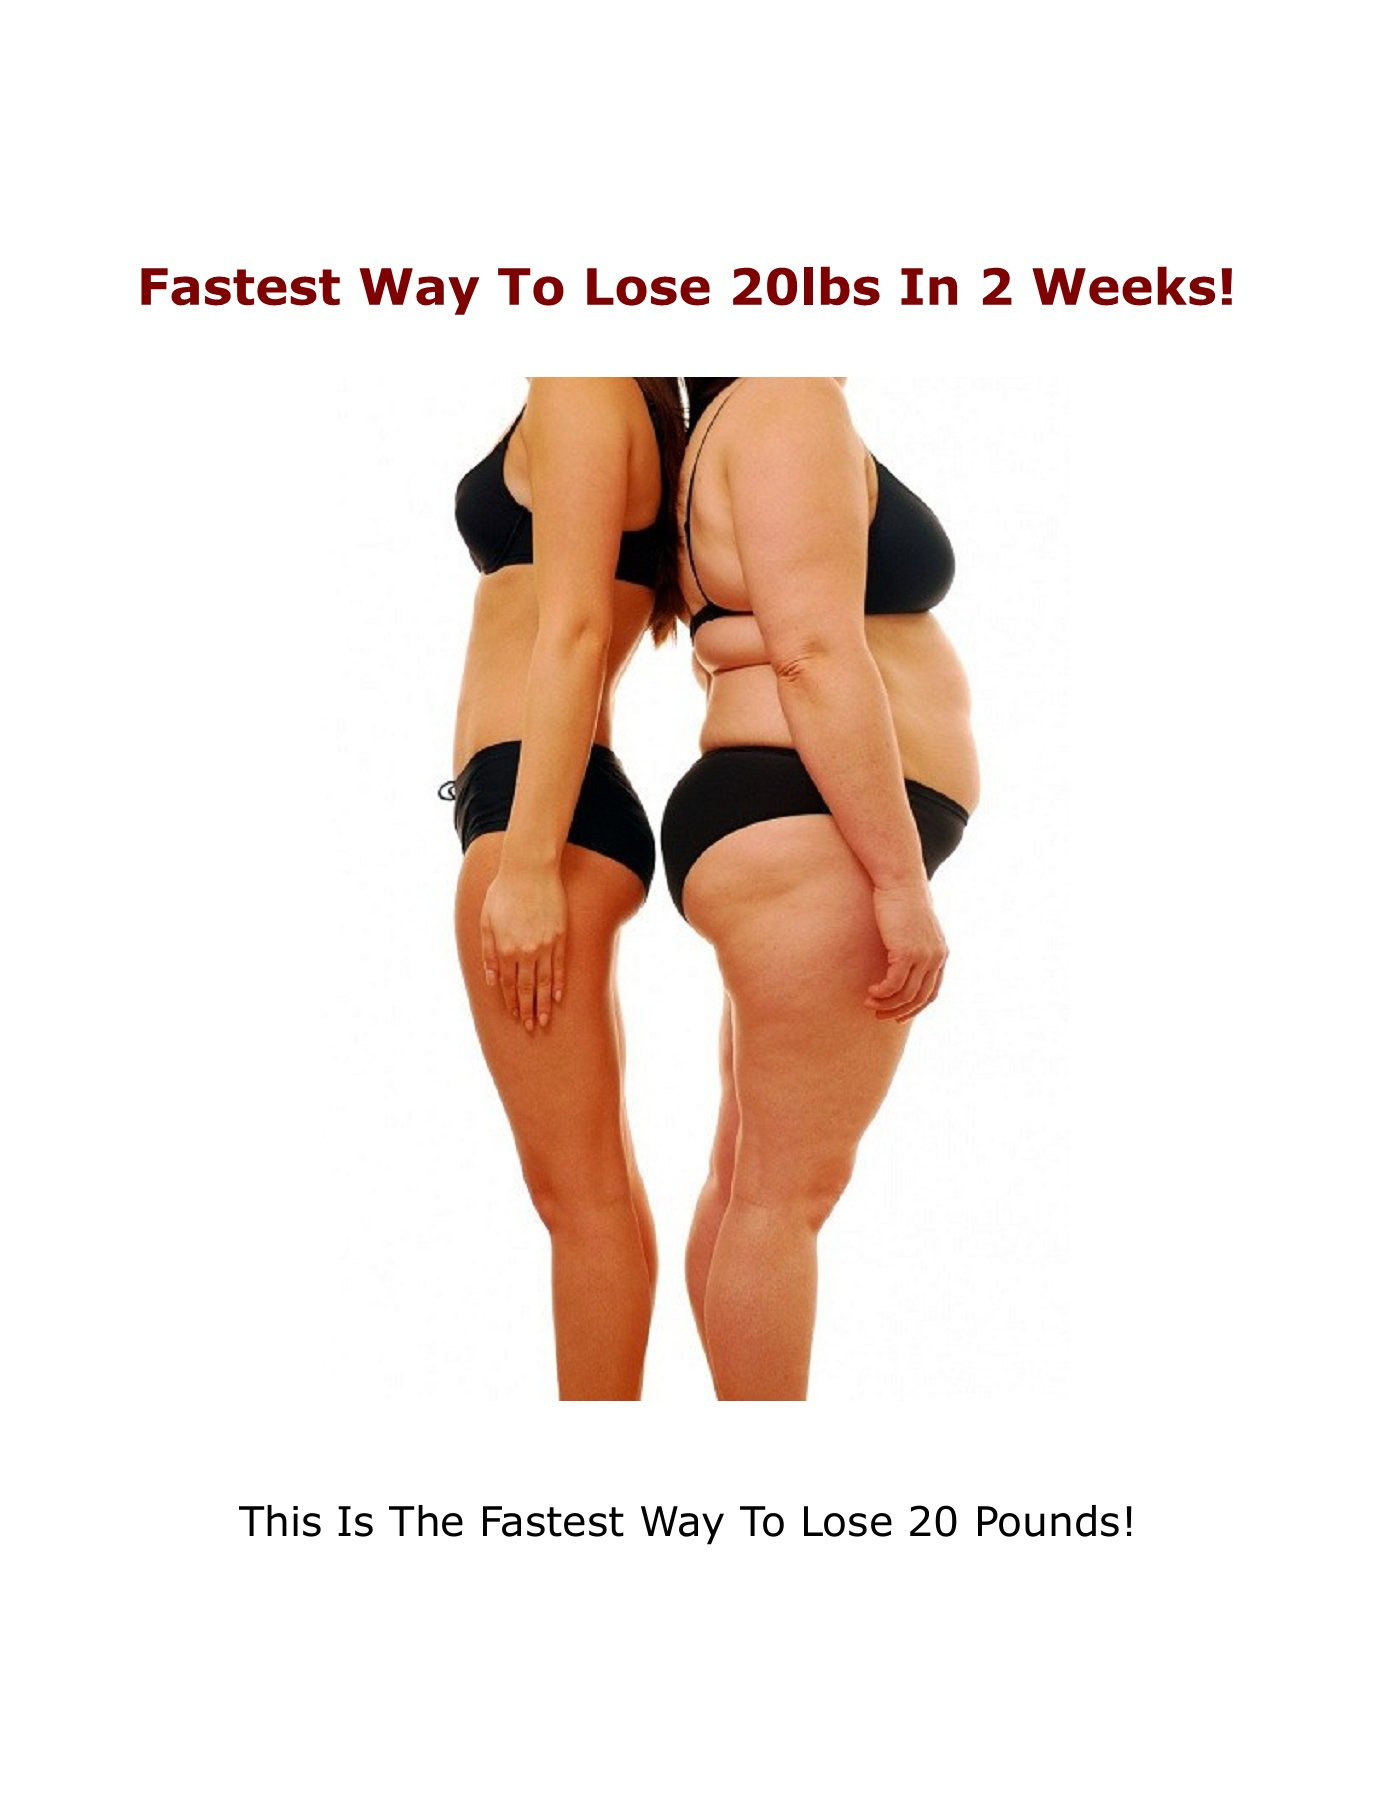 the fastest way to lose 20 lbs